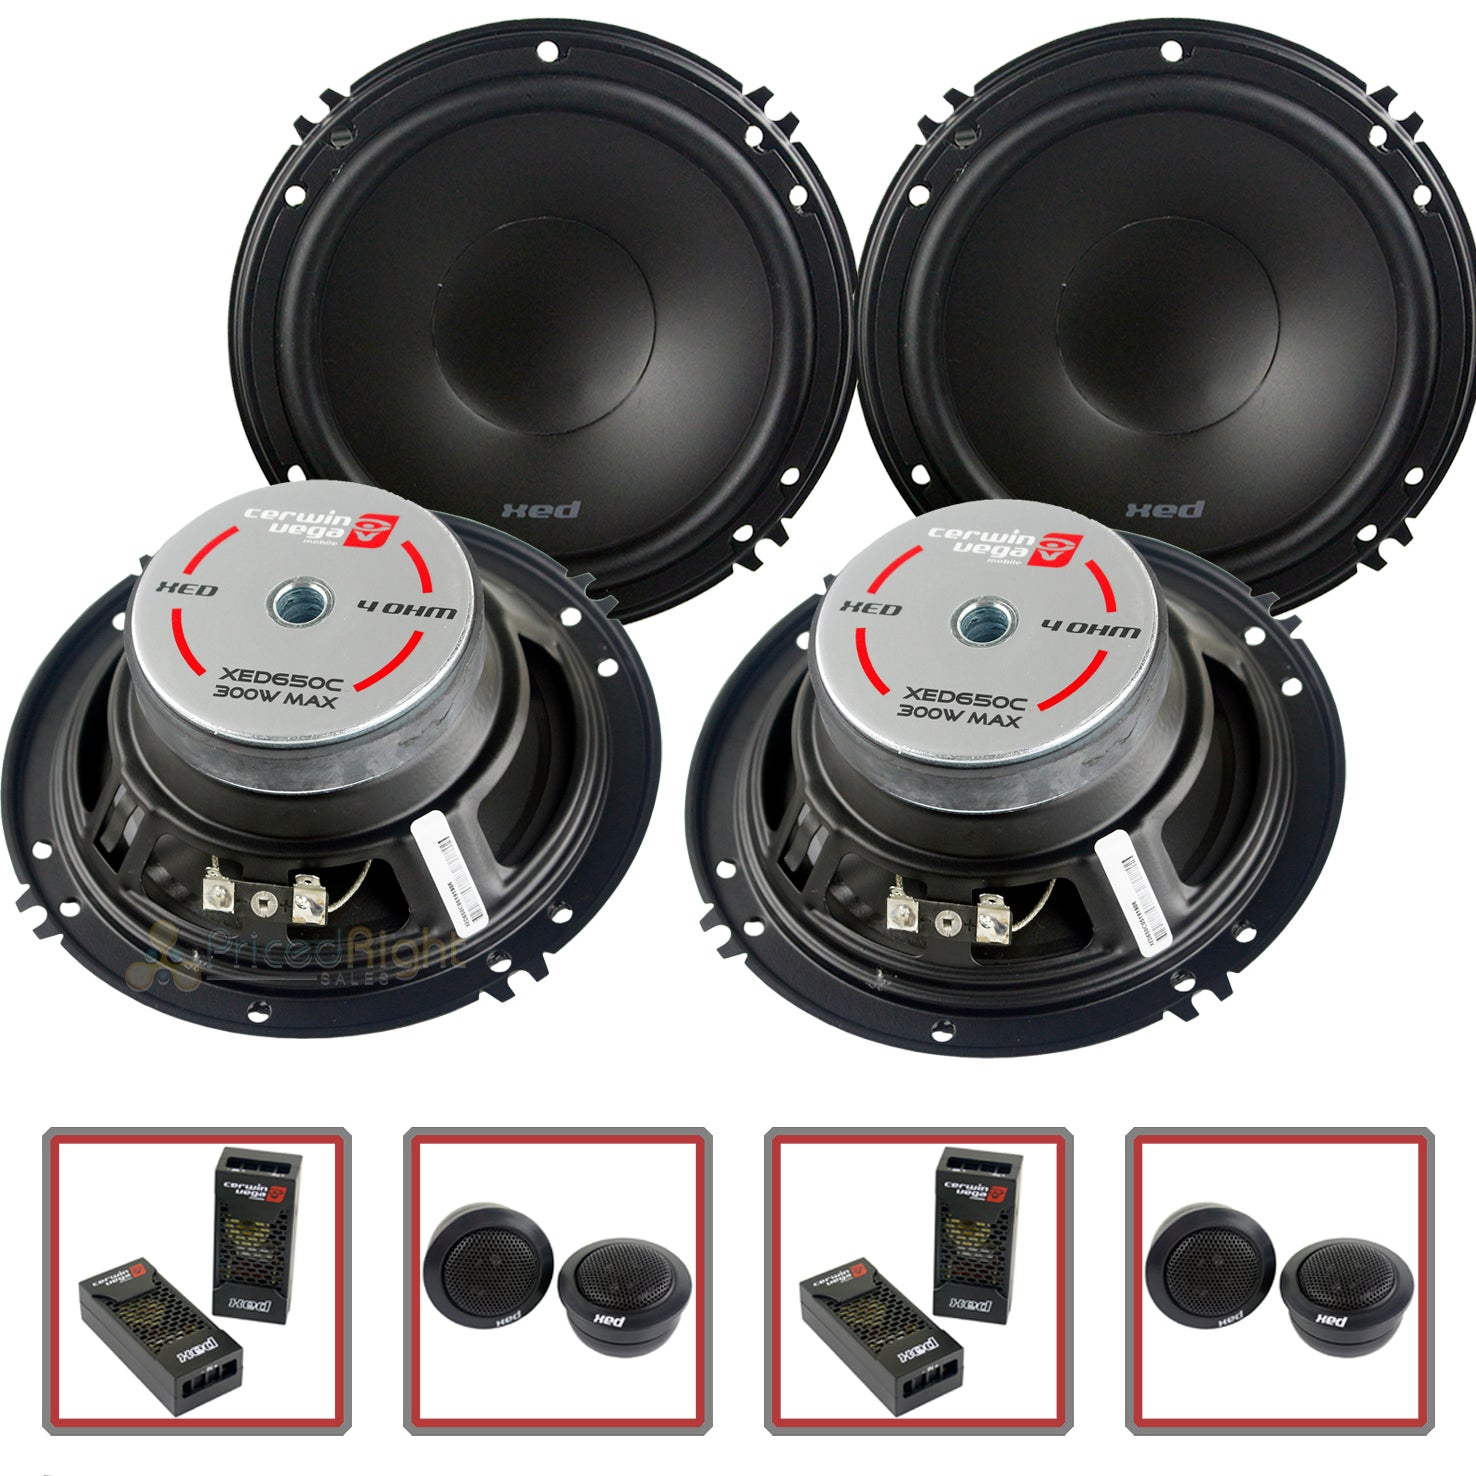 "4 Cerwin Vega 2 Way 6.5"" Component Speaker System Tweeter Crossover Xed650c"